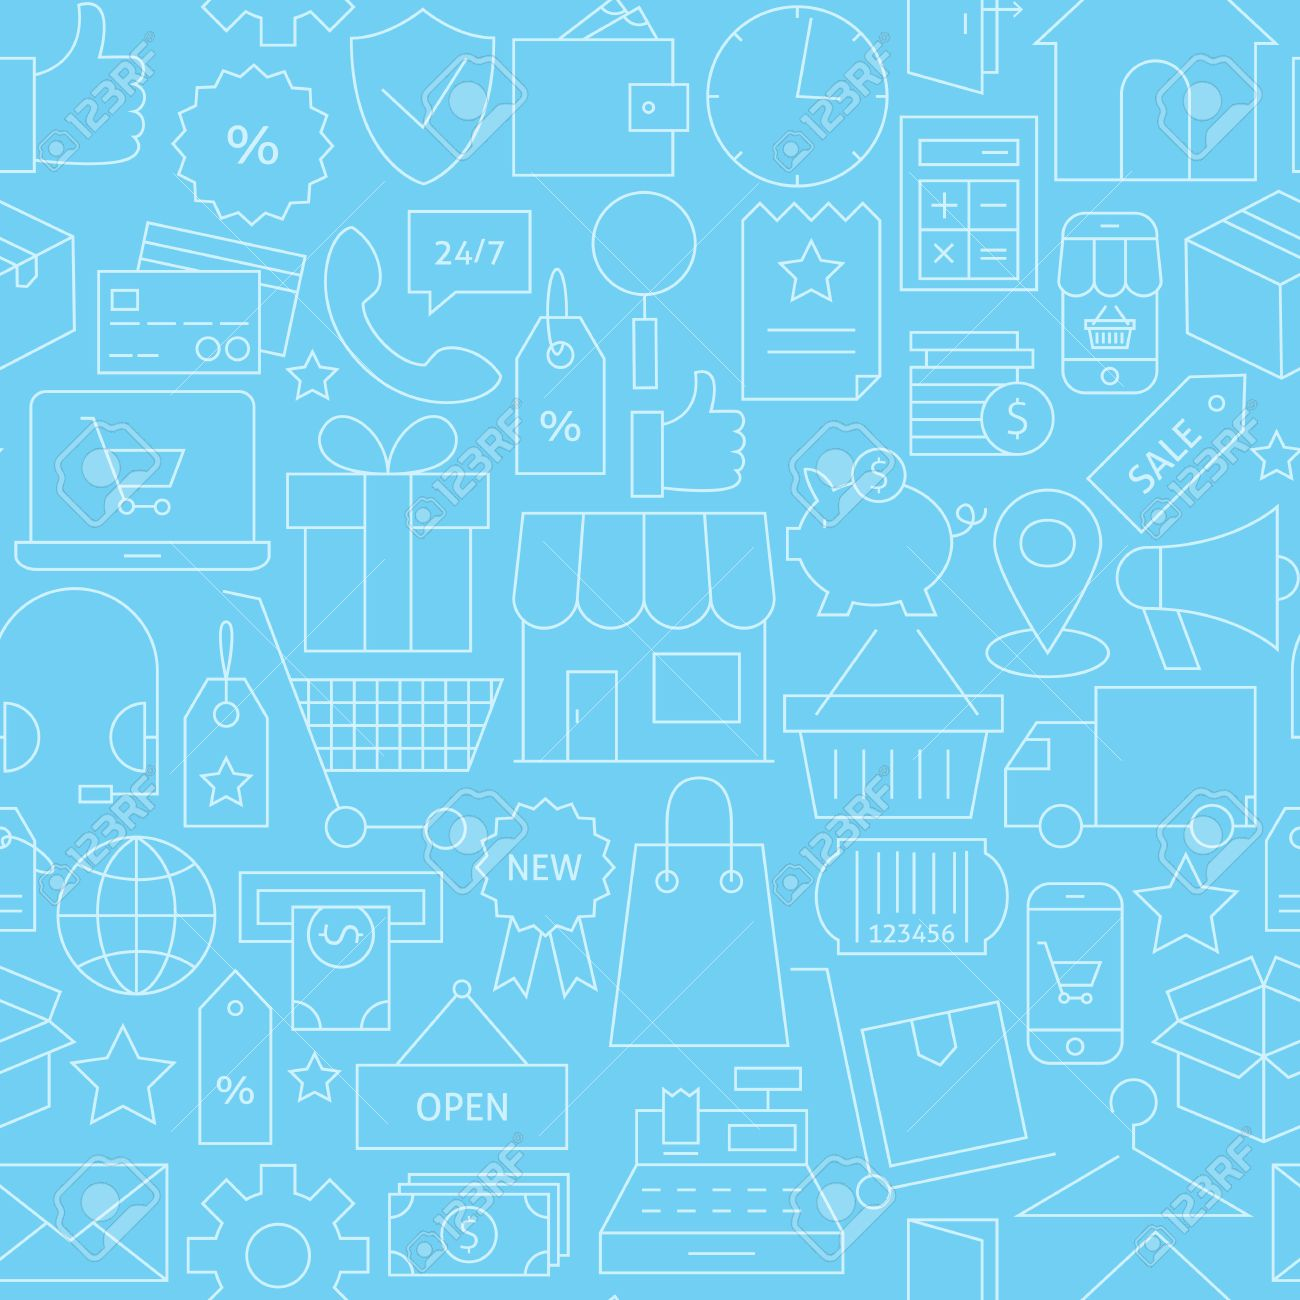 E commerce background images - Thin Line Retail E Commerce Online Business Seamless Blue Pattern Vector Shopping And Marketplace